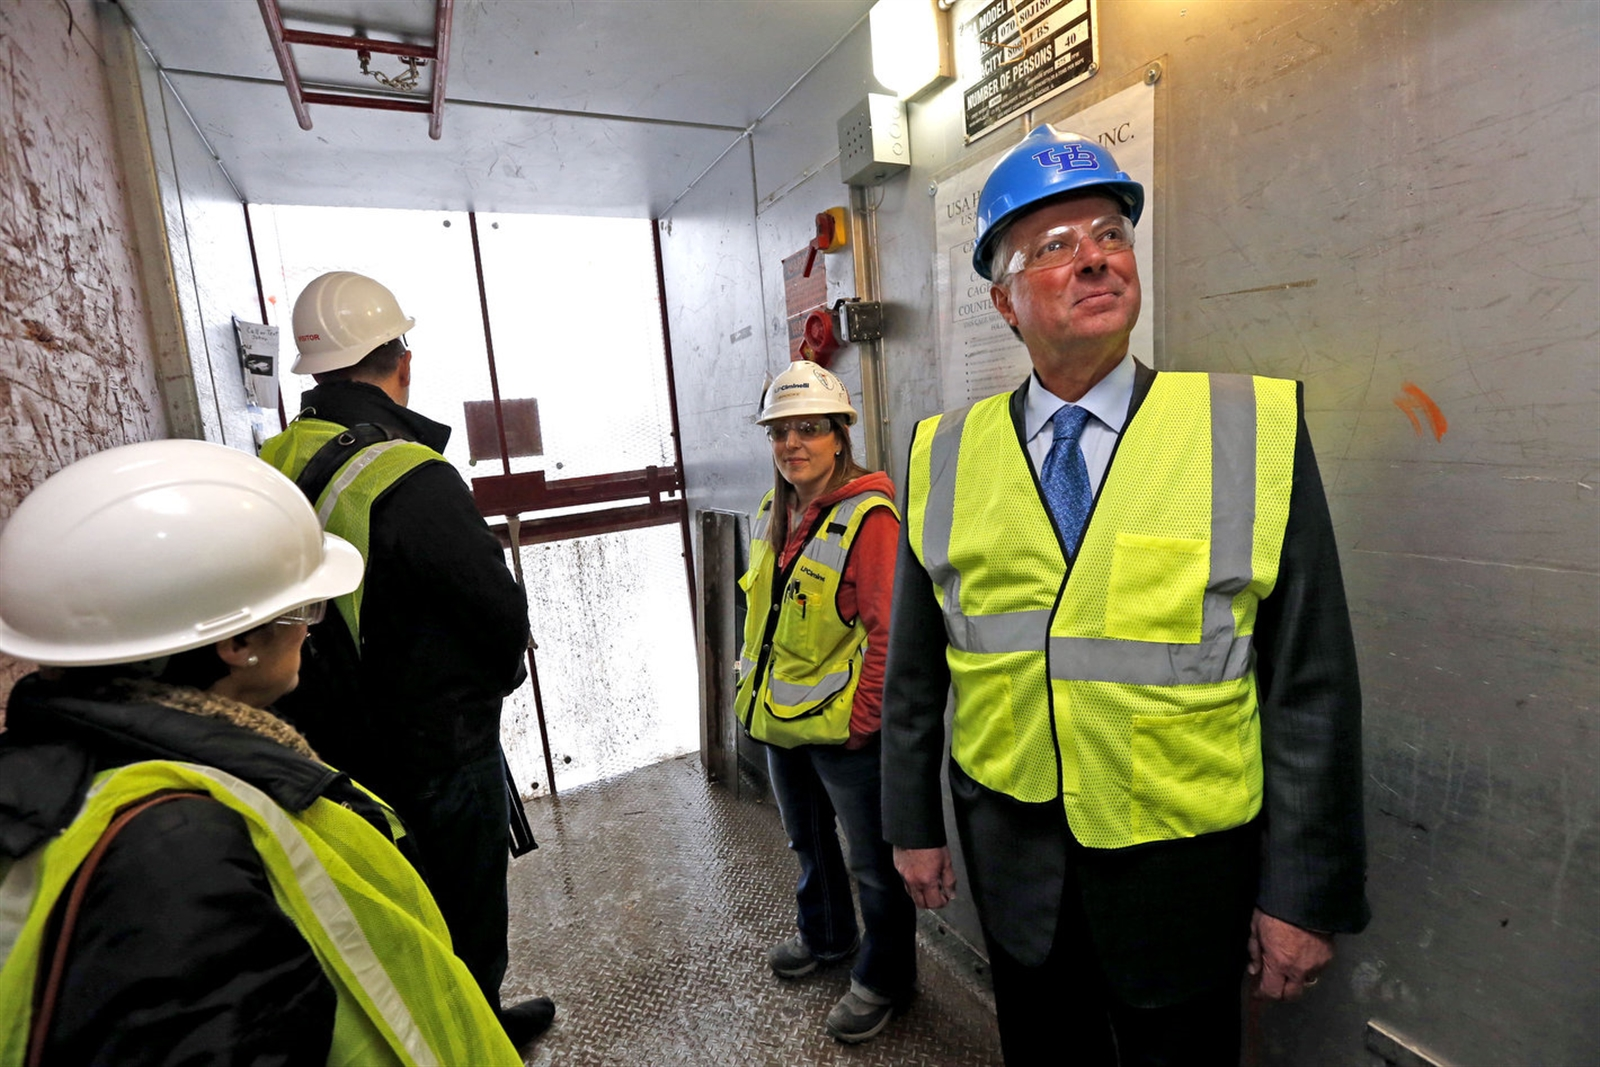 Ub jacobs school of medicine and biomedical sciences the buffalo news on dec 14 2016 dr michael e cain wearing blue malvernweather Image collections